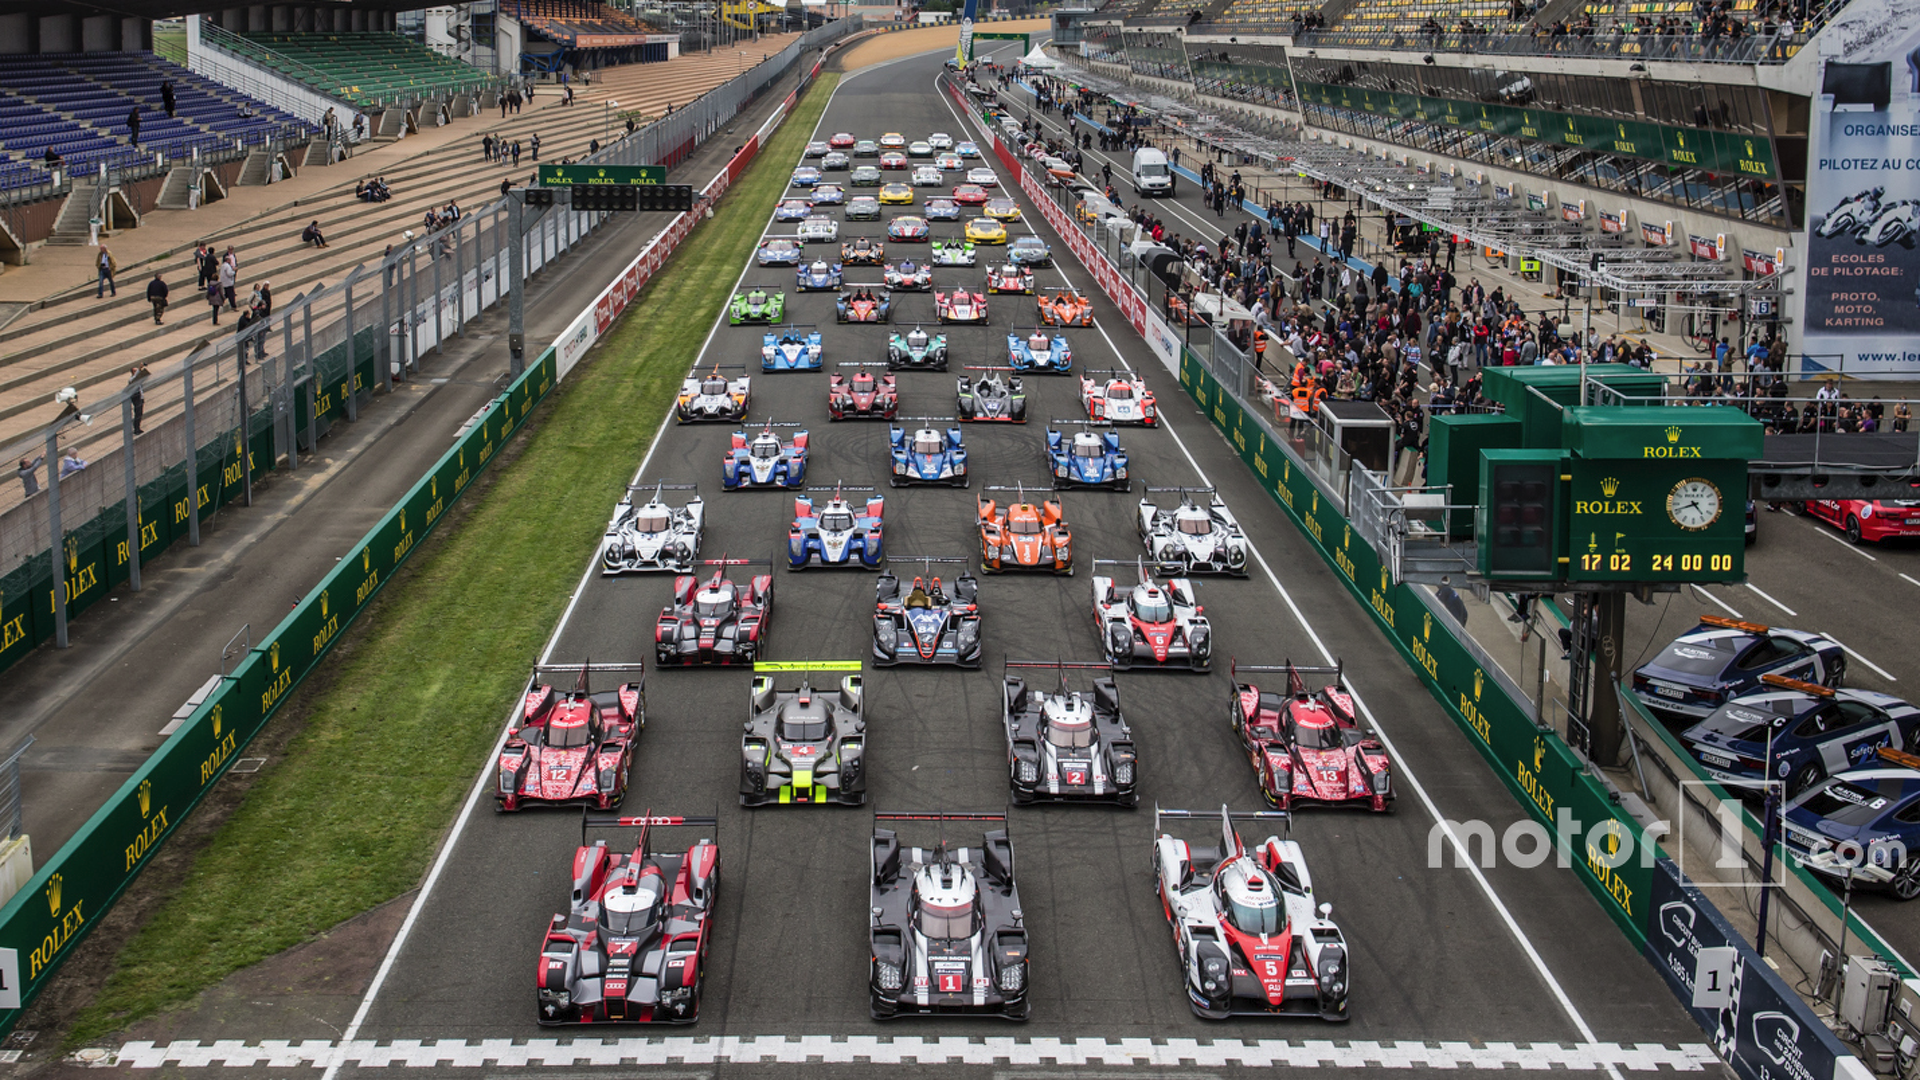 Top 10 photos from Le Mans